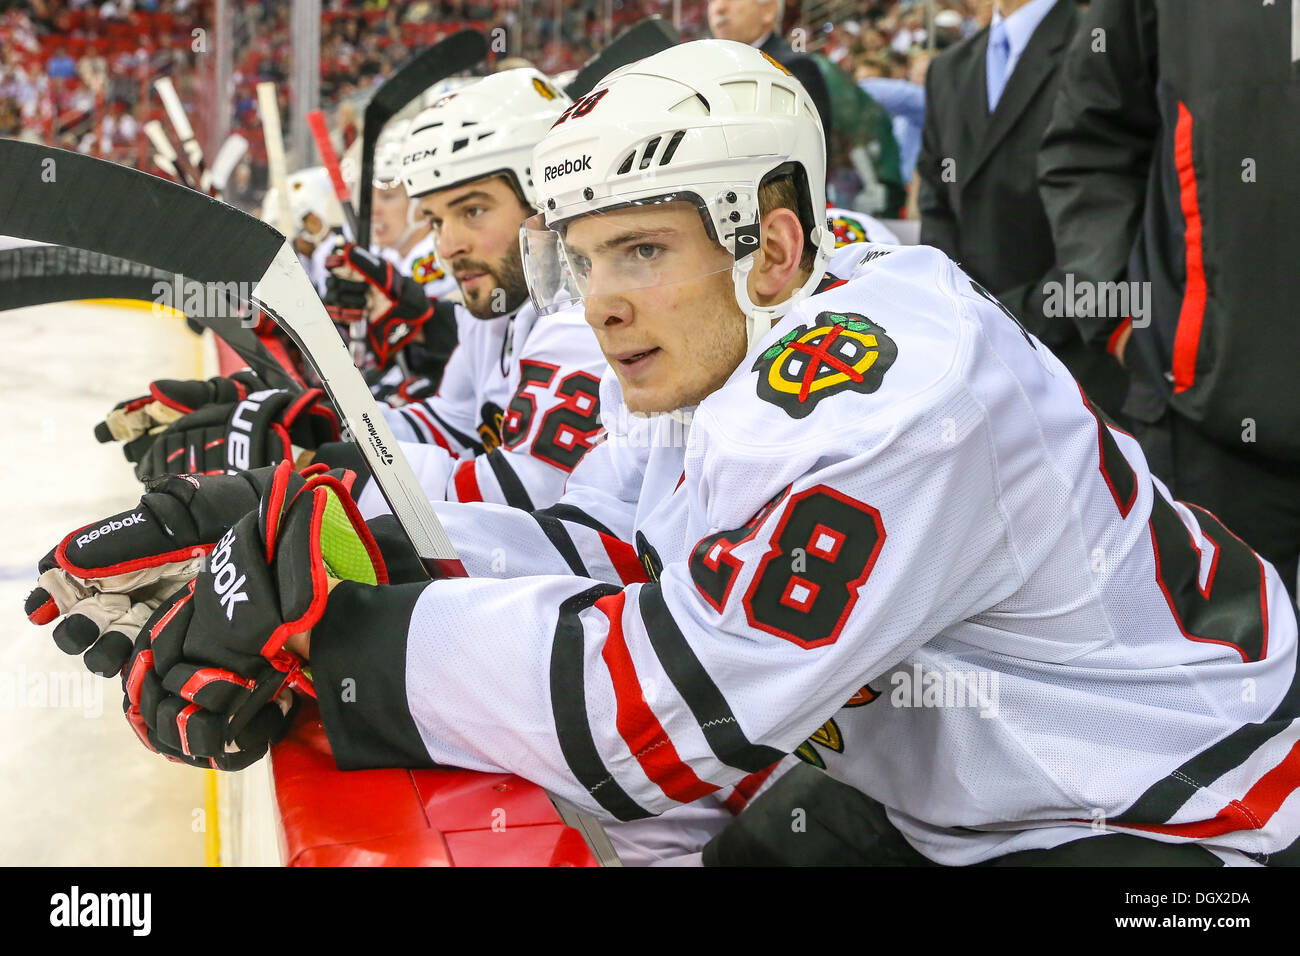 Chicago Blackhawk Ben Smith during an NHL hockey game during the 2013-2014 season - Stock Image